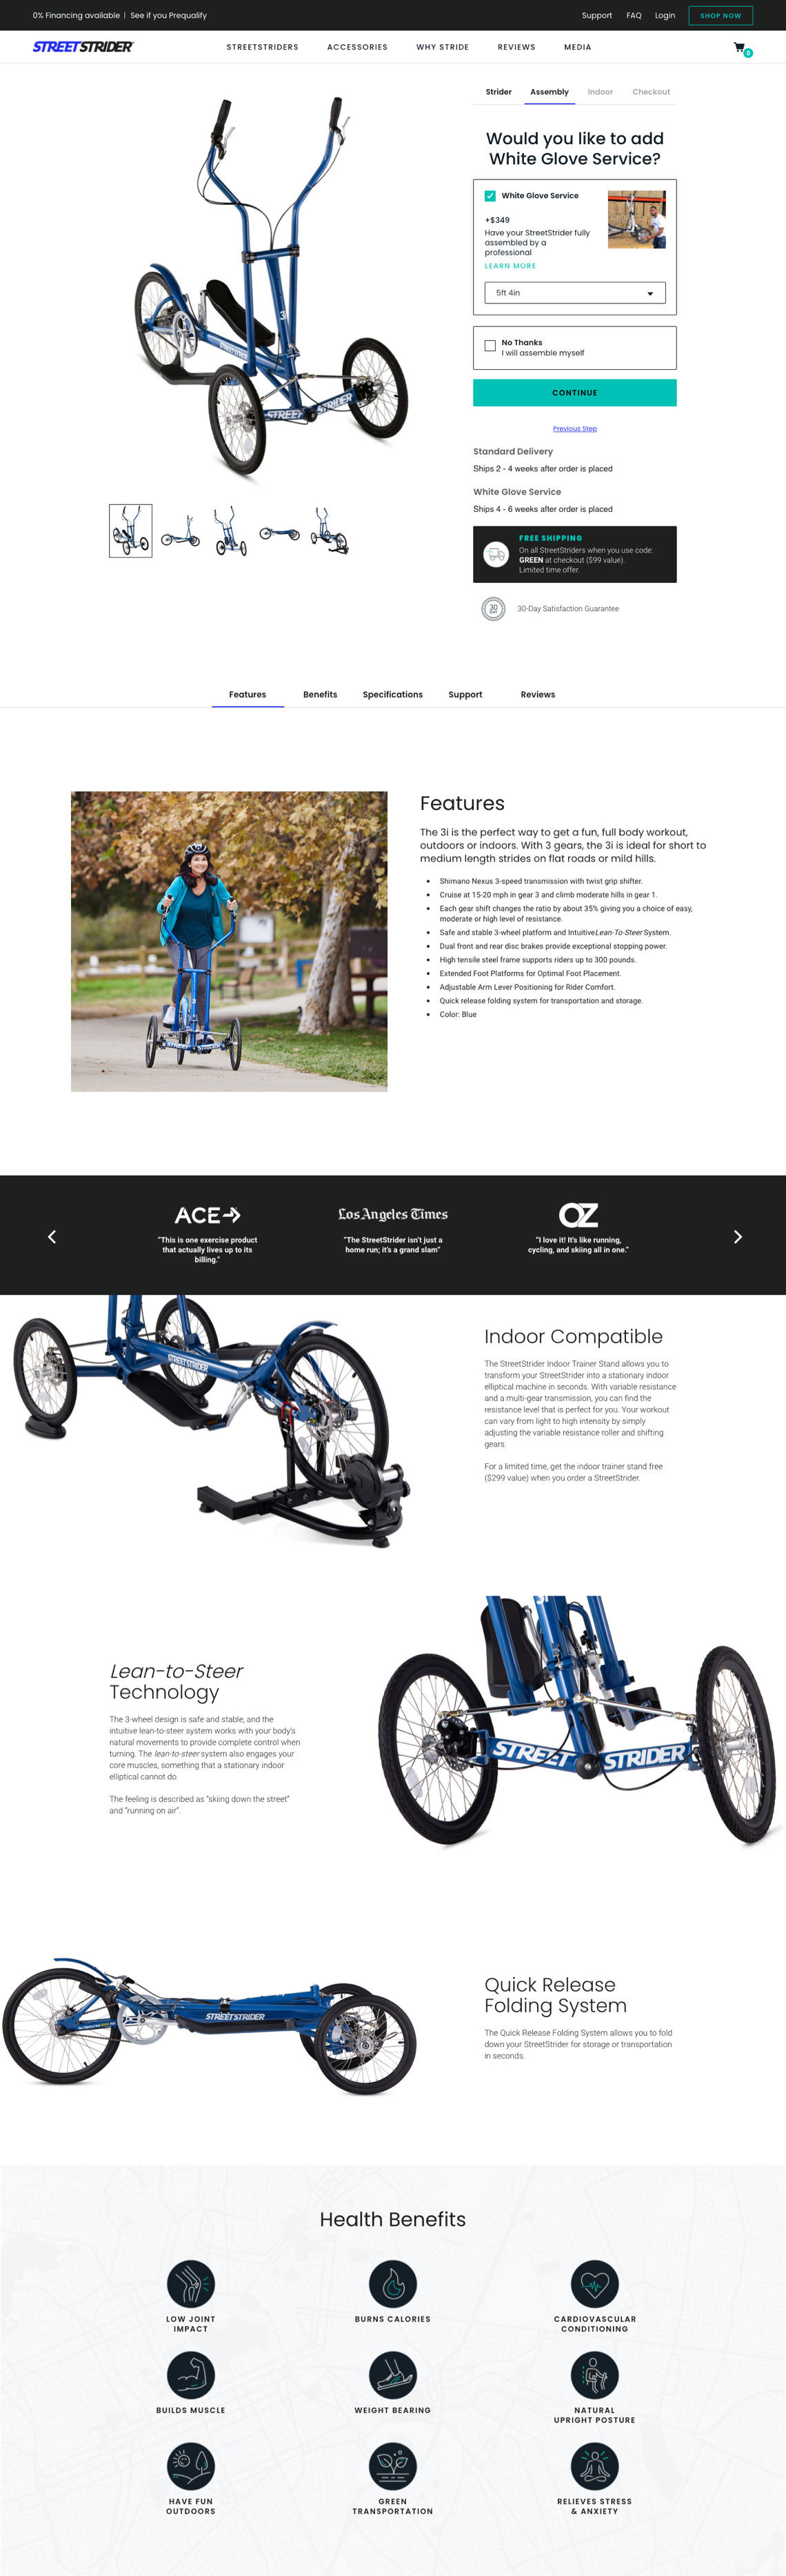 StreetStrider - Product Detail Page